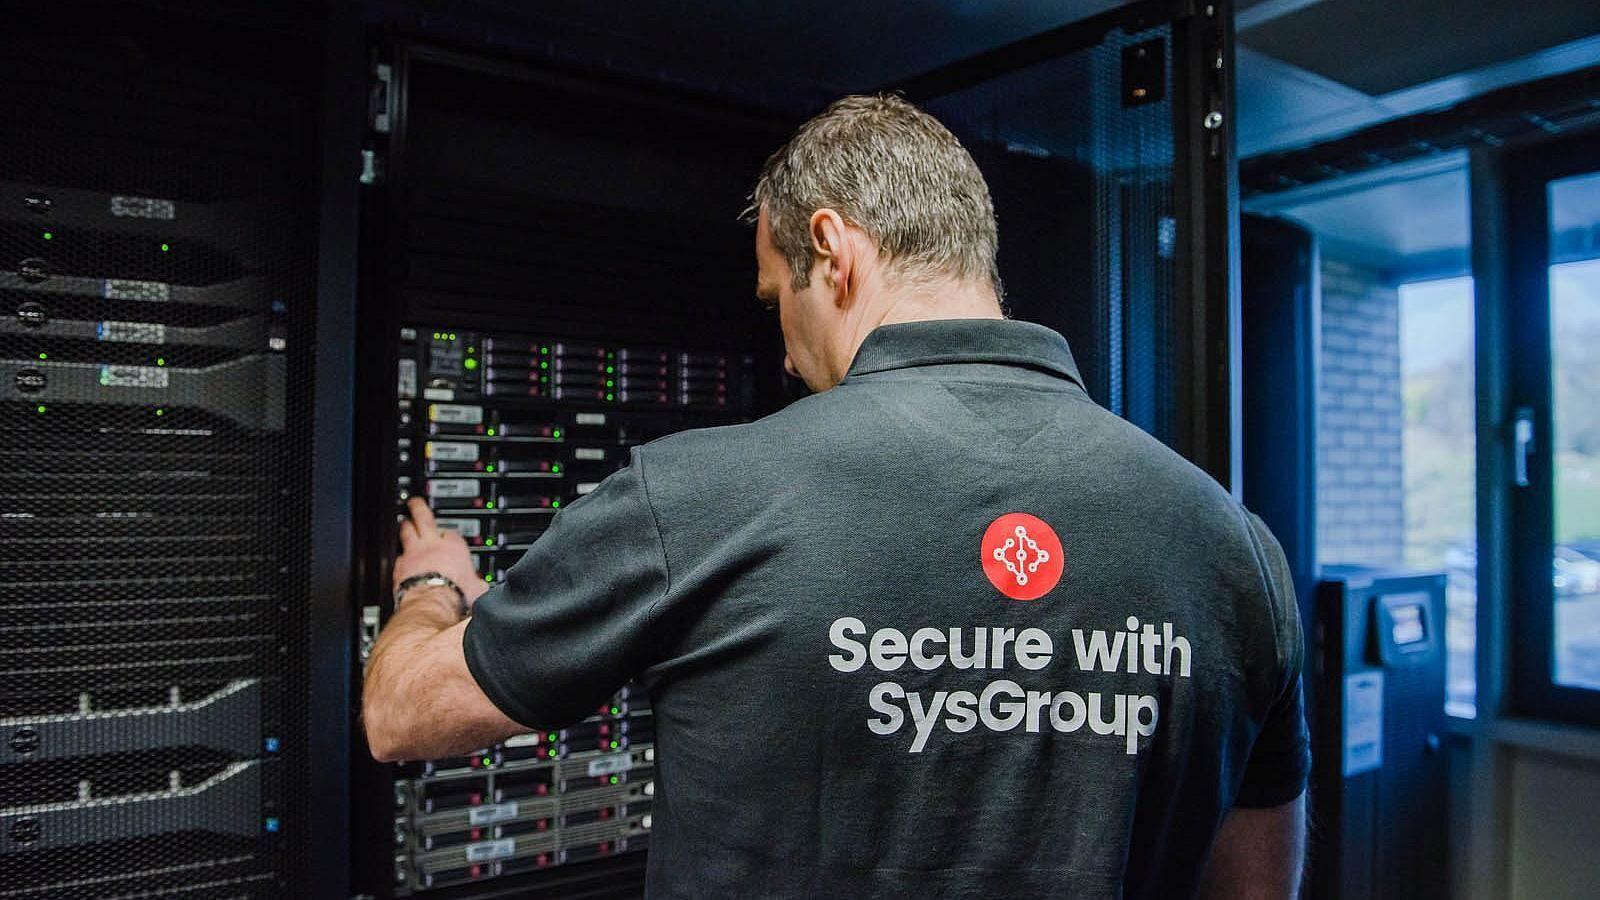 Sysgroup growth accelerates with revenue up 47.3%